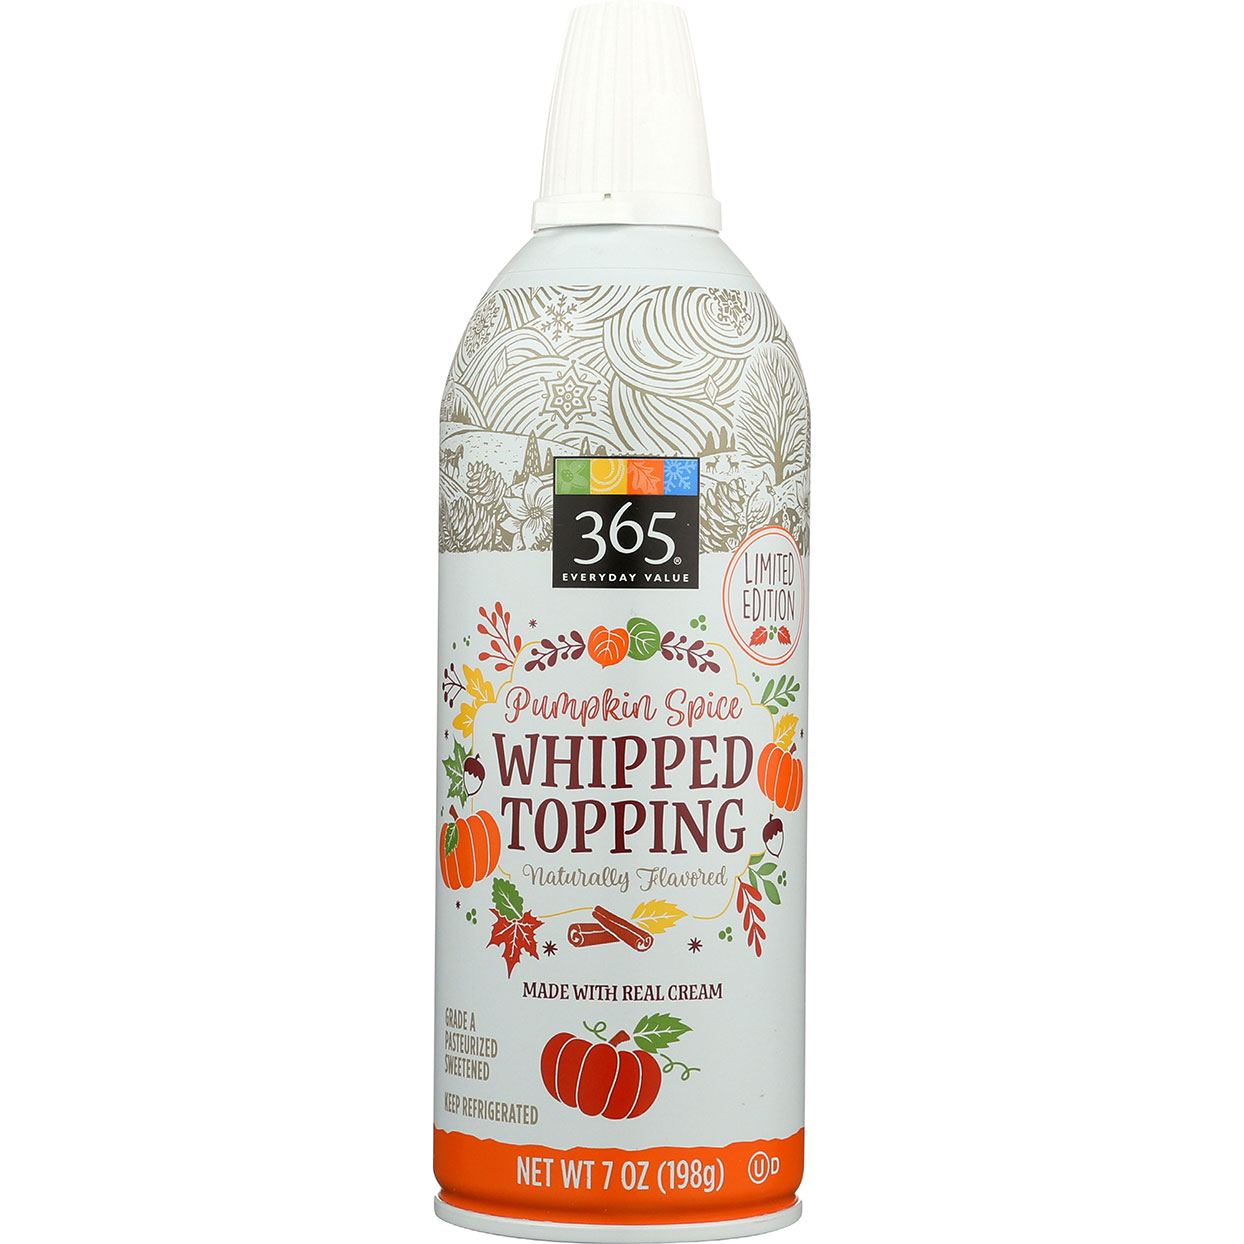 bottle of 365 brand Pumpkin Spice Whipped Topping